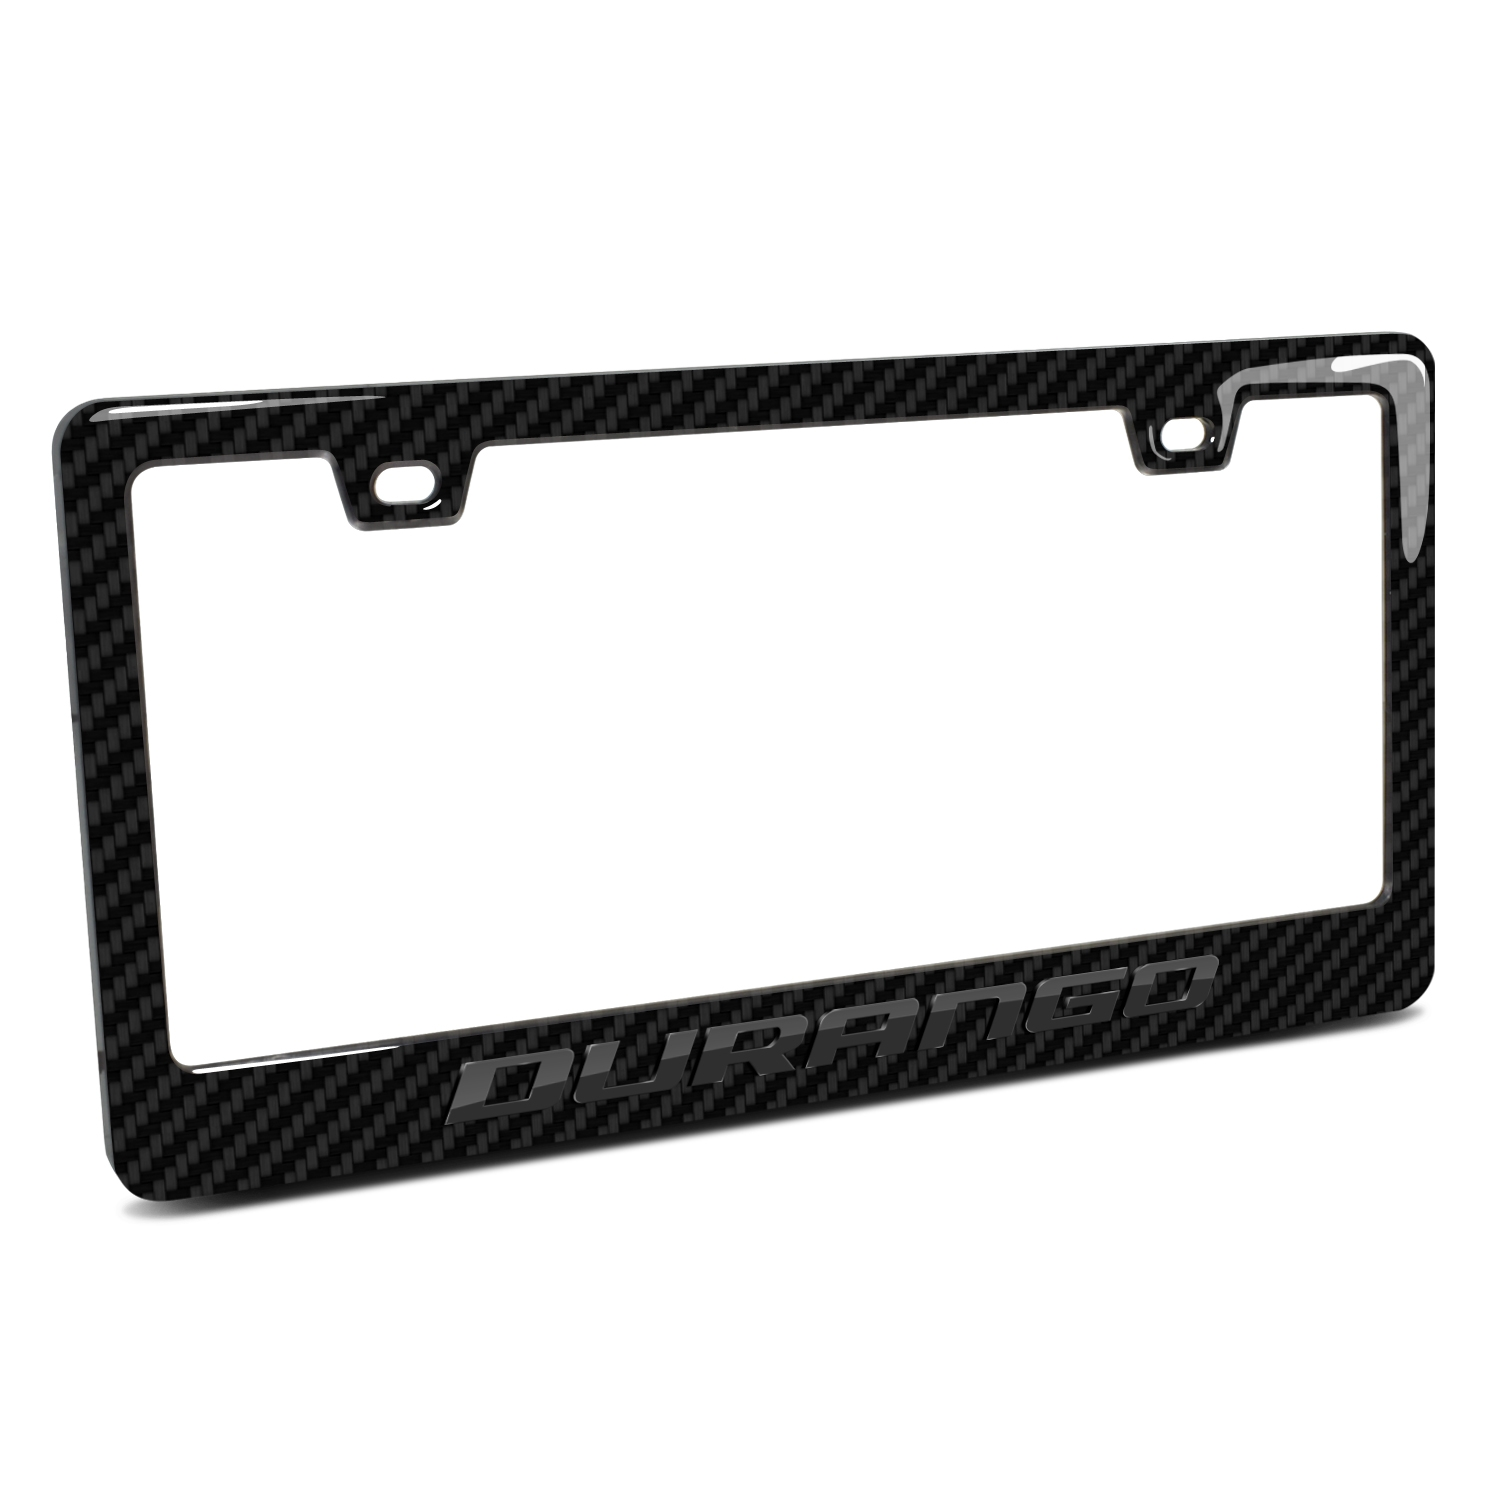 Dodge Durango in 3D Black on Black Real 3K Carbon Fiber Finish ABS Plastic License Plate Frame